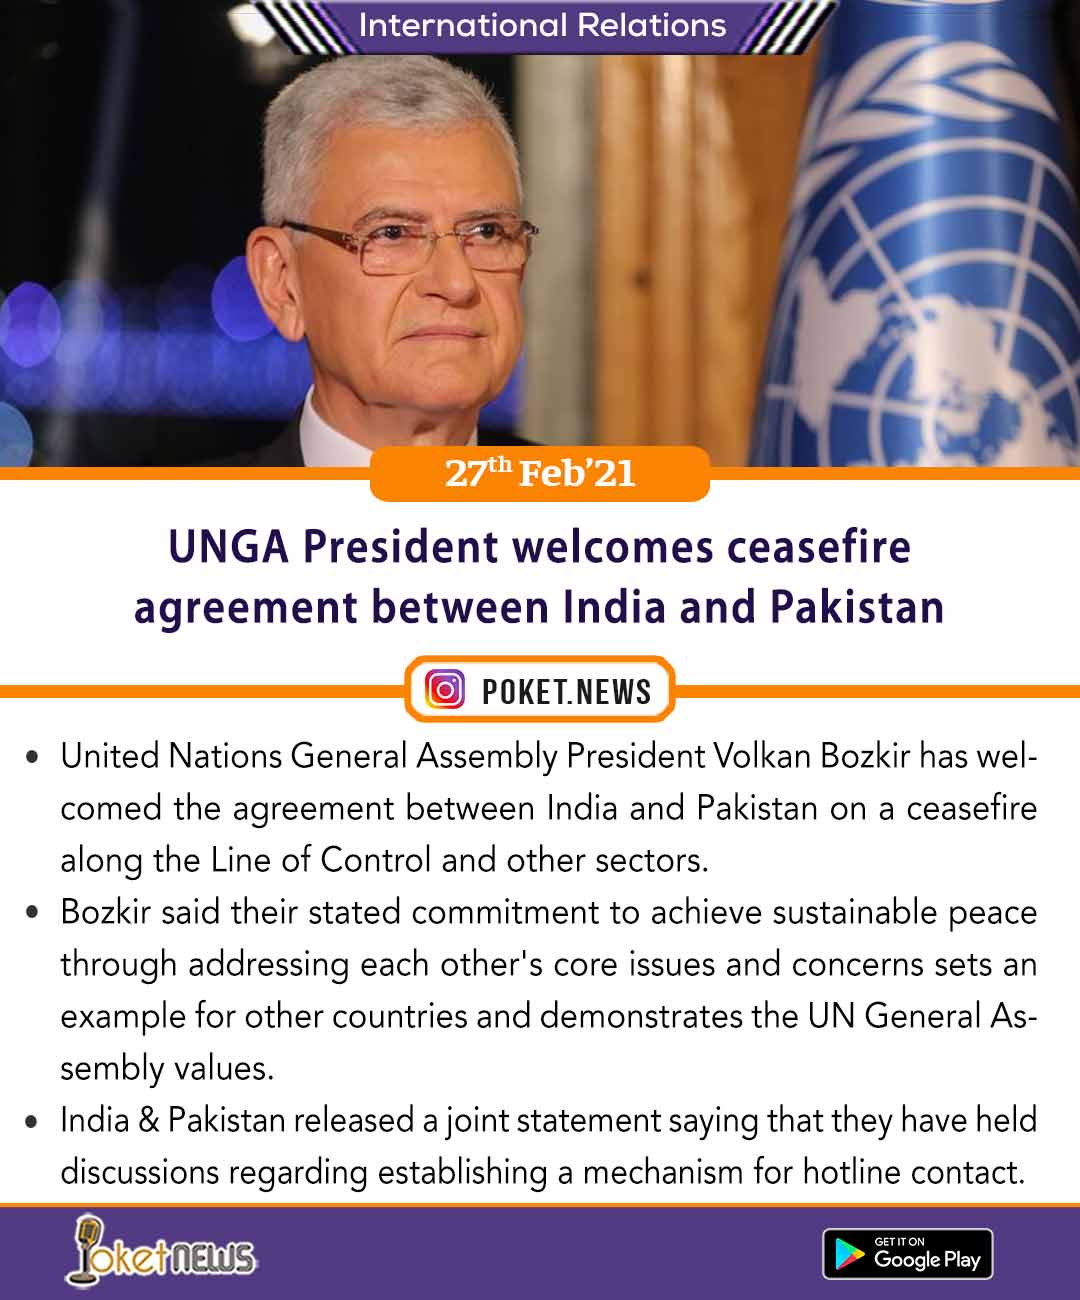 UNGA President welcomes ceasefire agreement between India and Pakistan